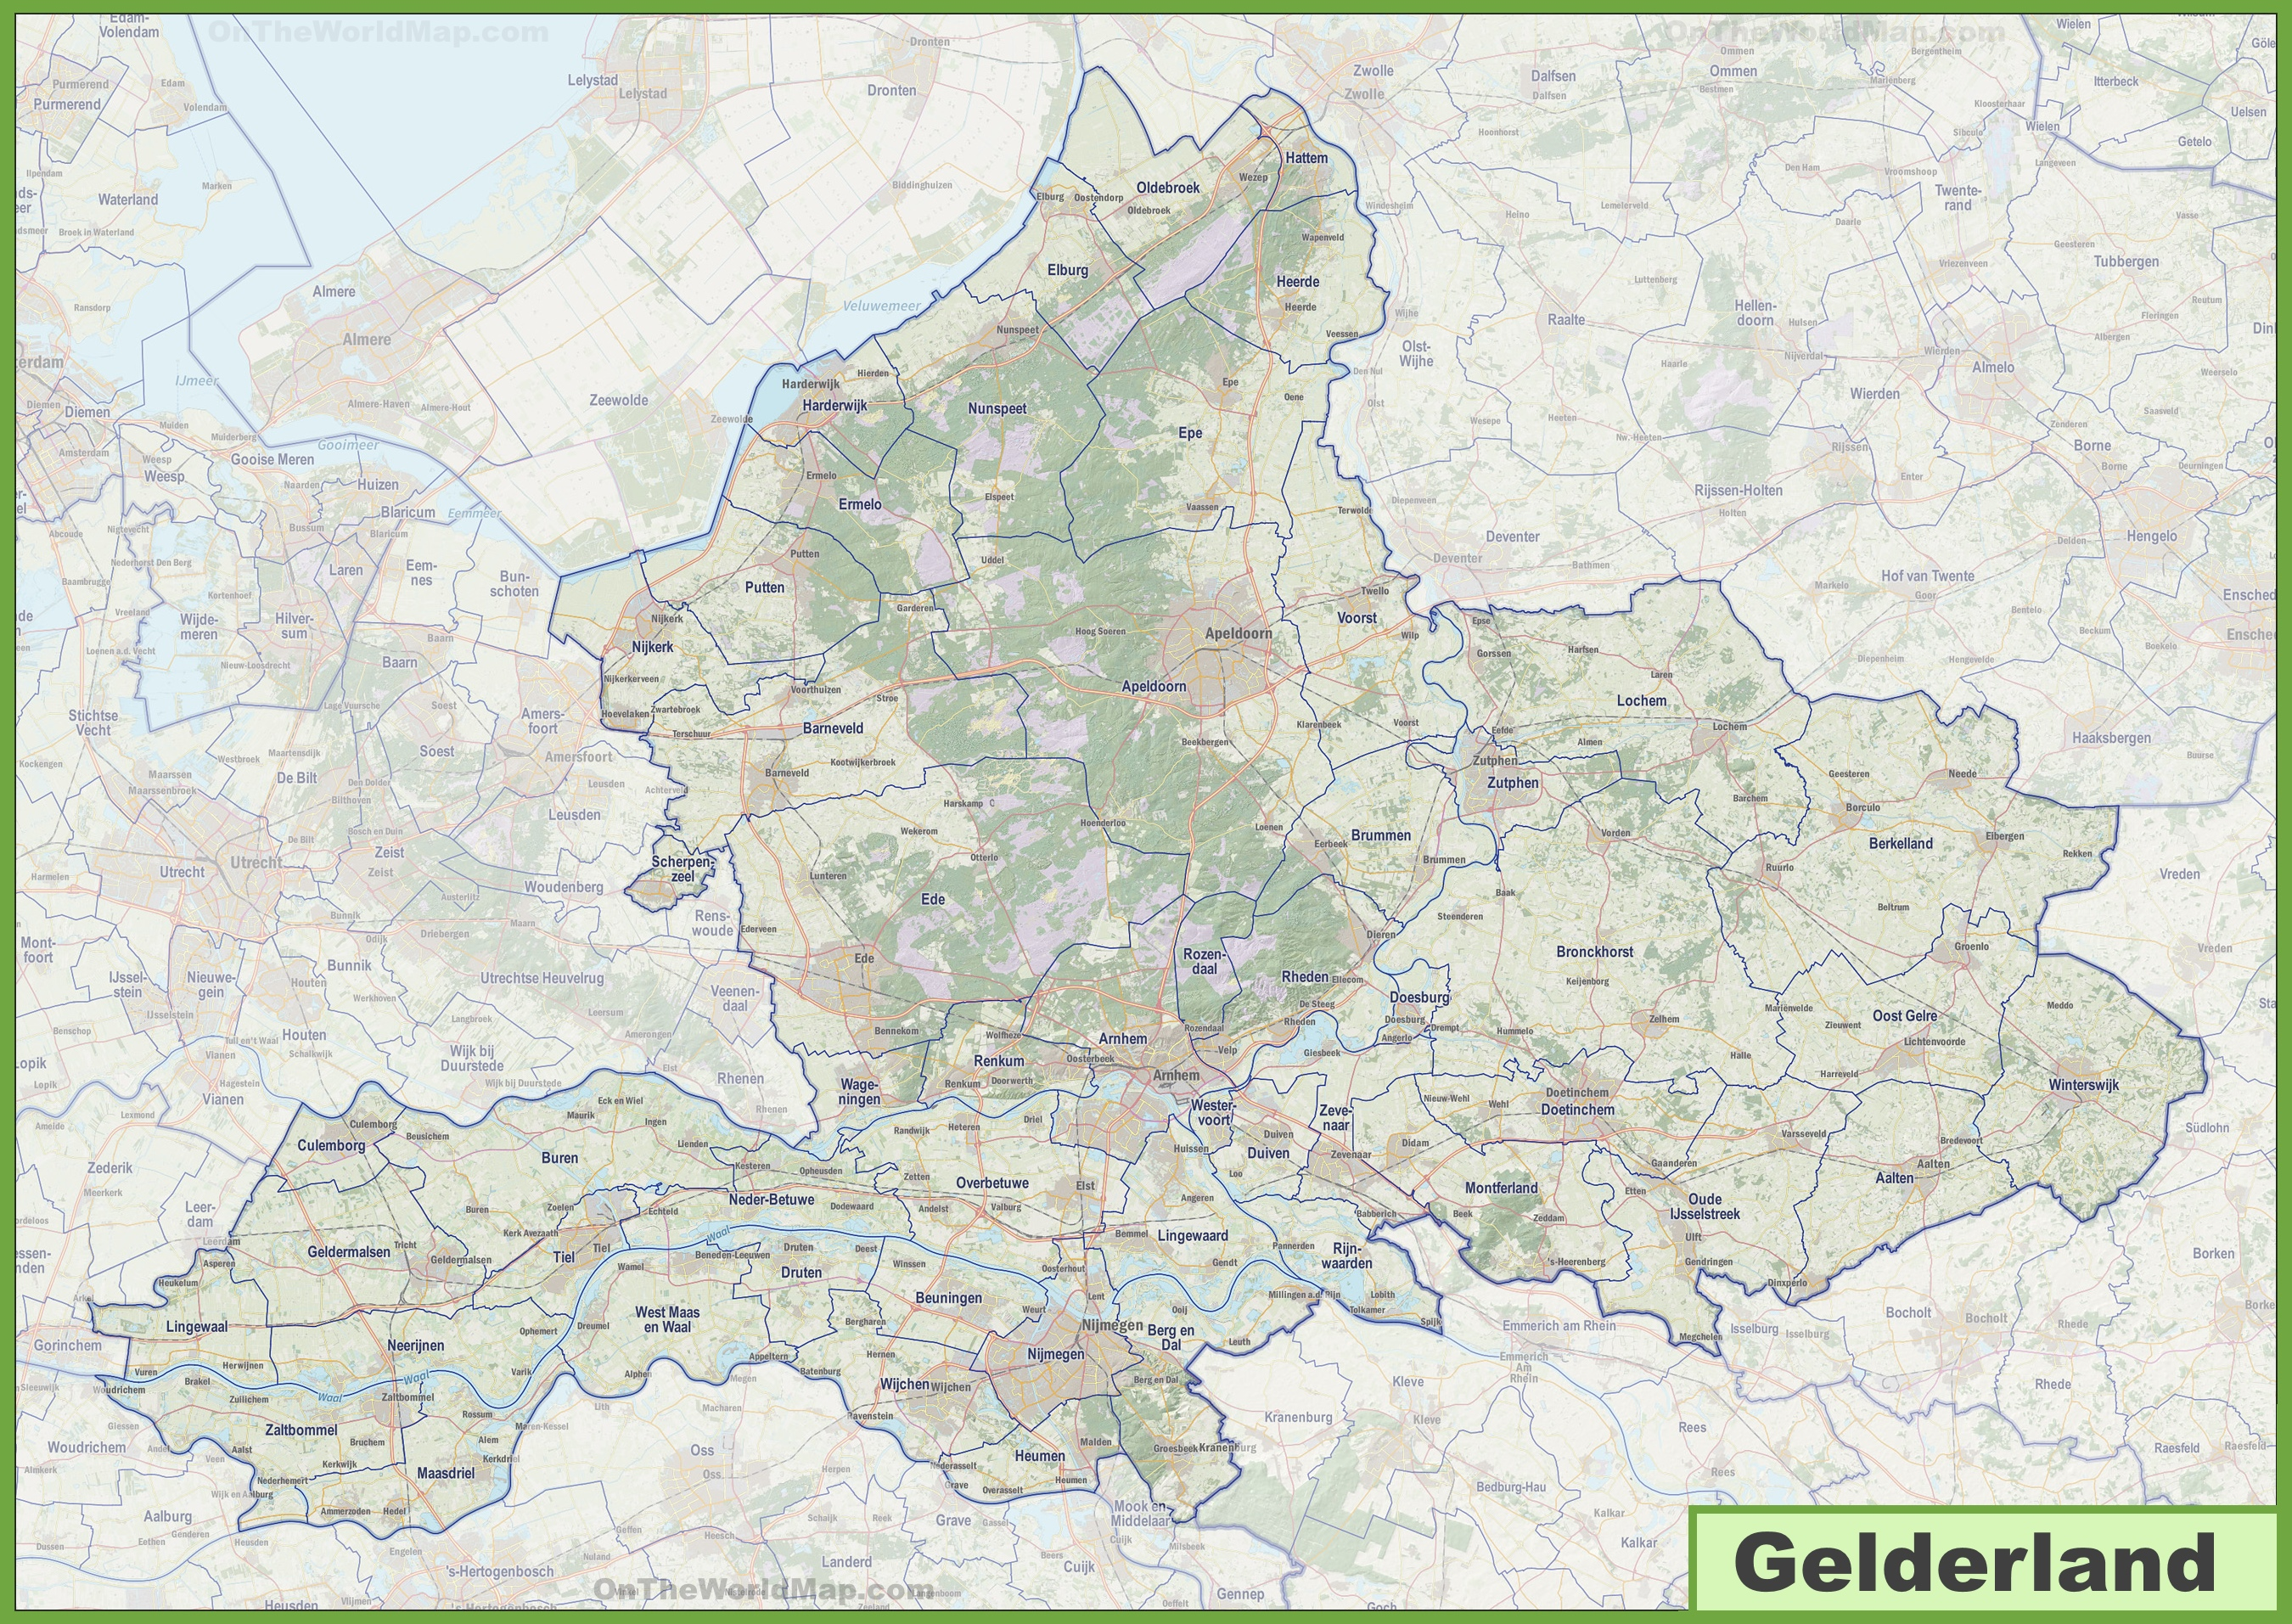 Map of Gelderland with cities and towns